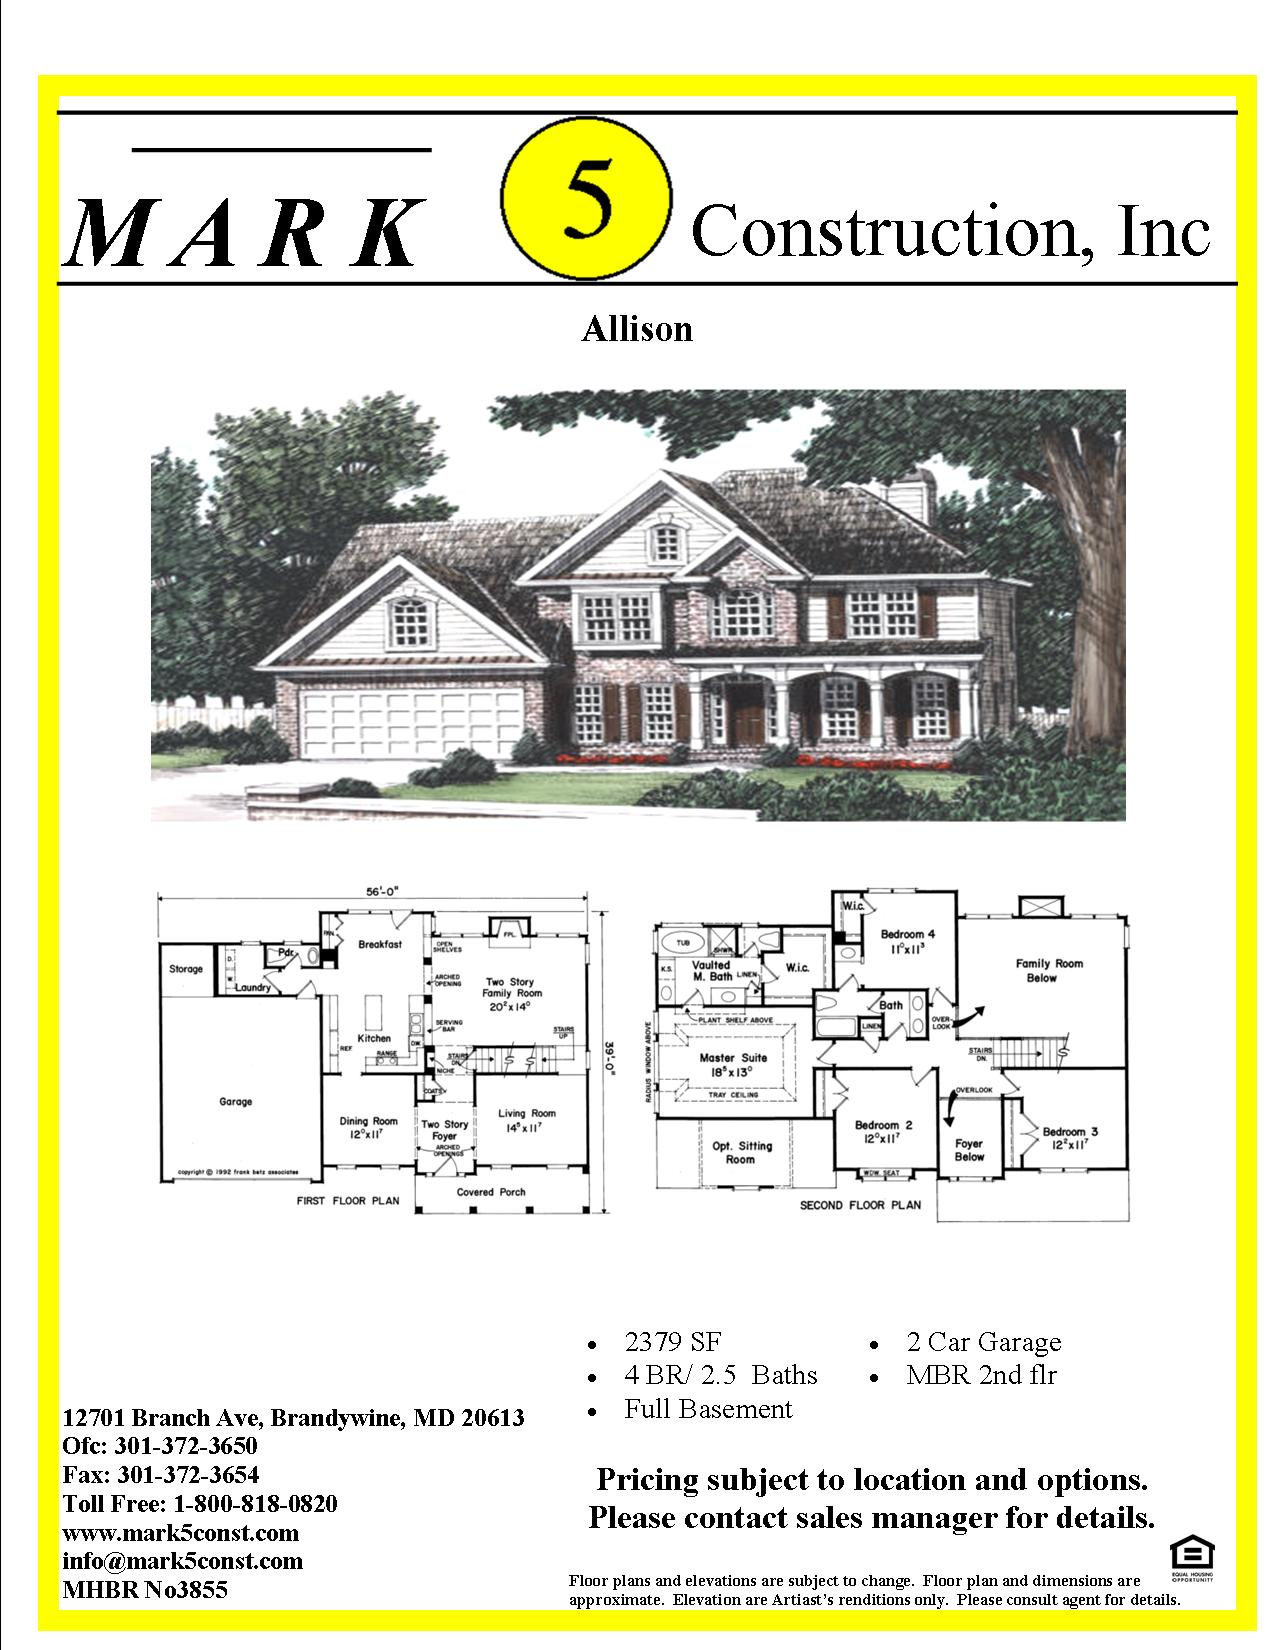 Allison mark 5 construction custom home builders in for Nw home builders